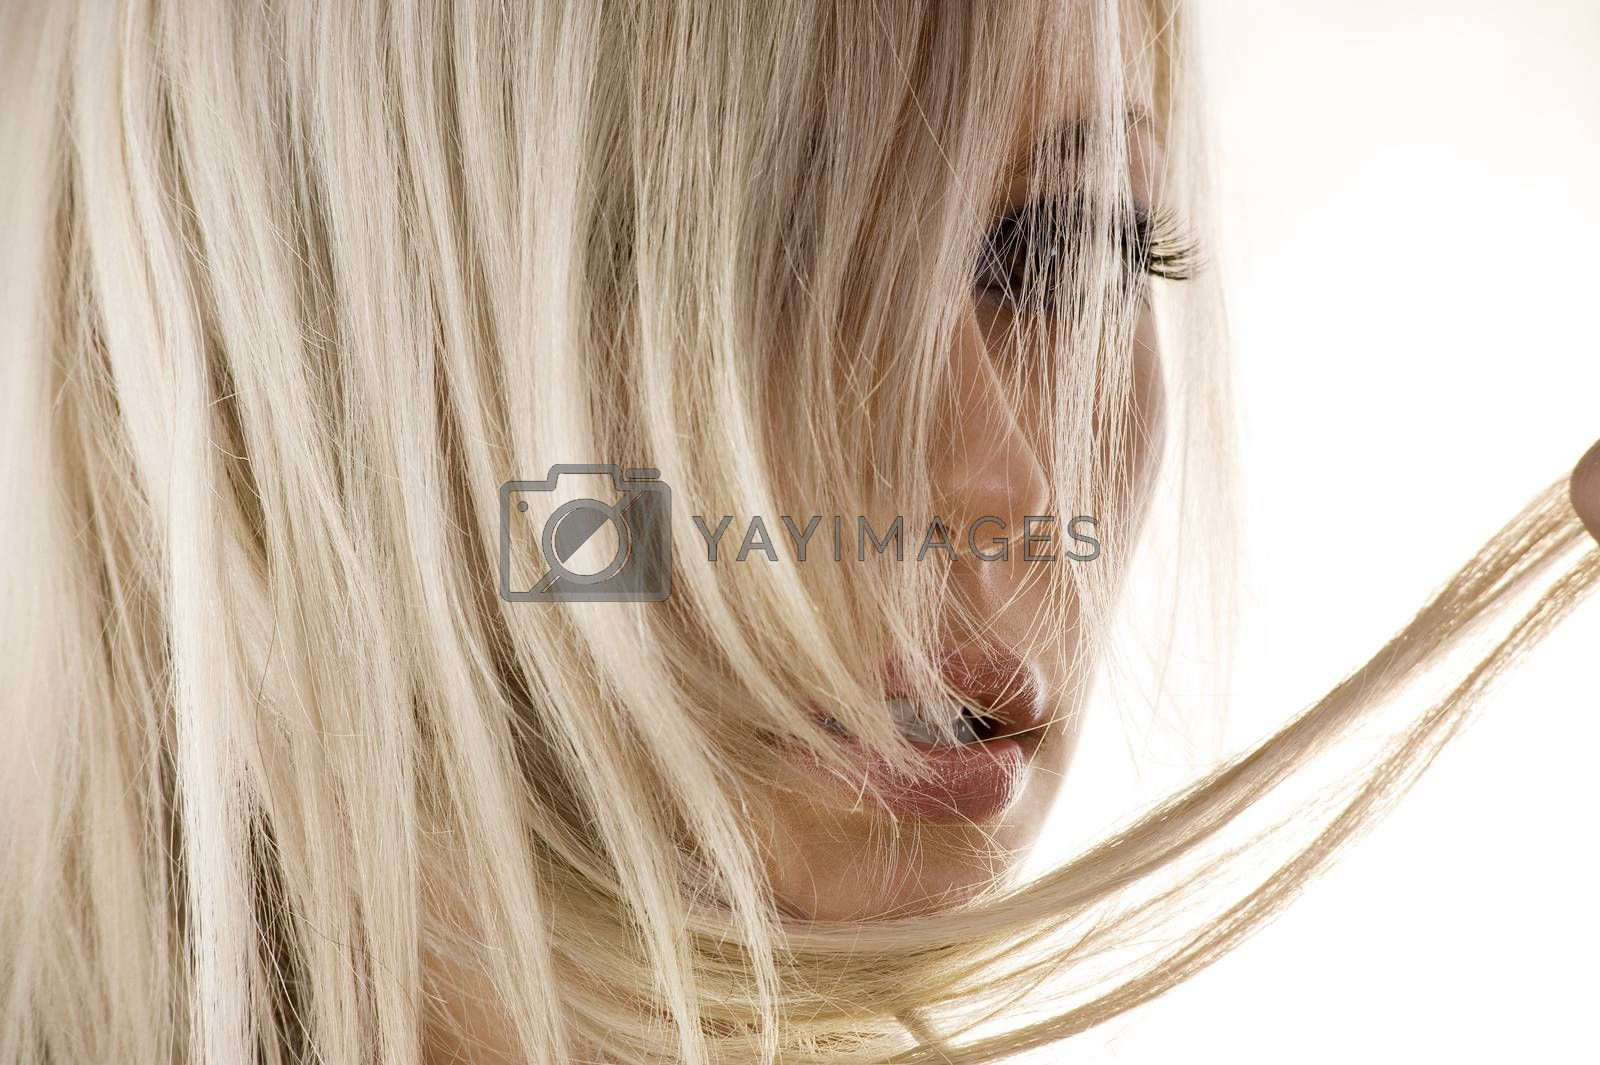 Royalty free image of blond hair by fotoCD